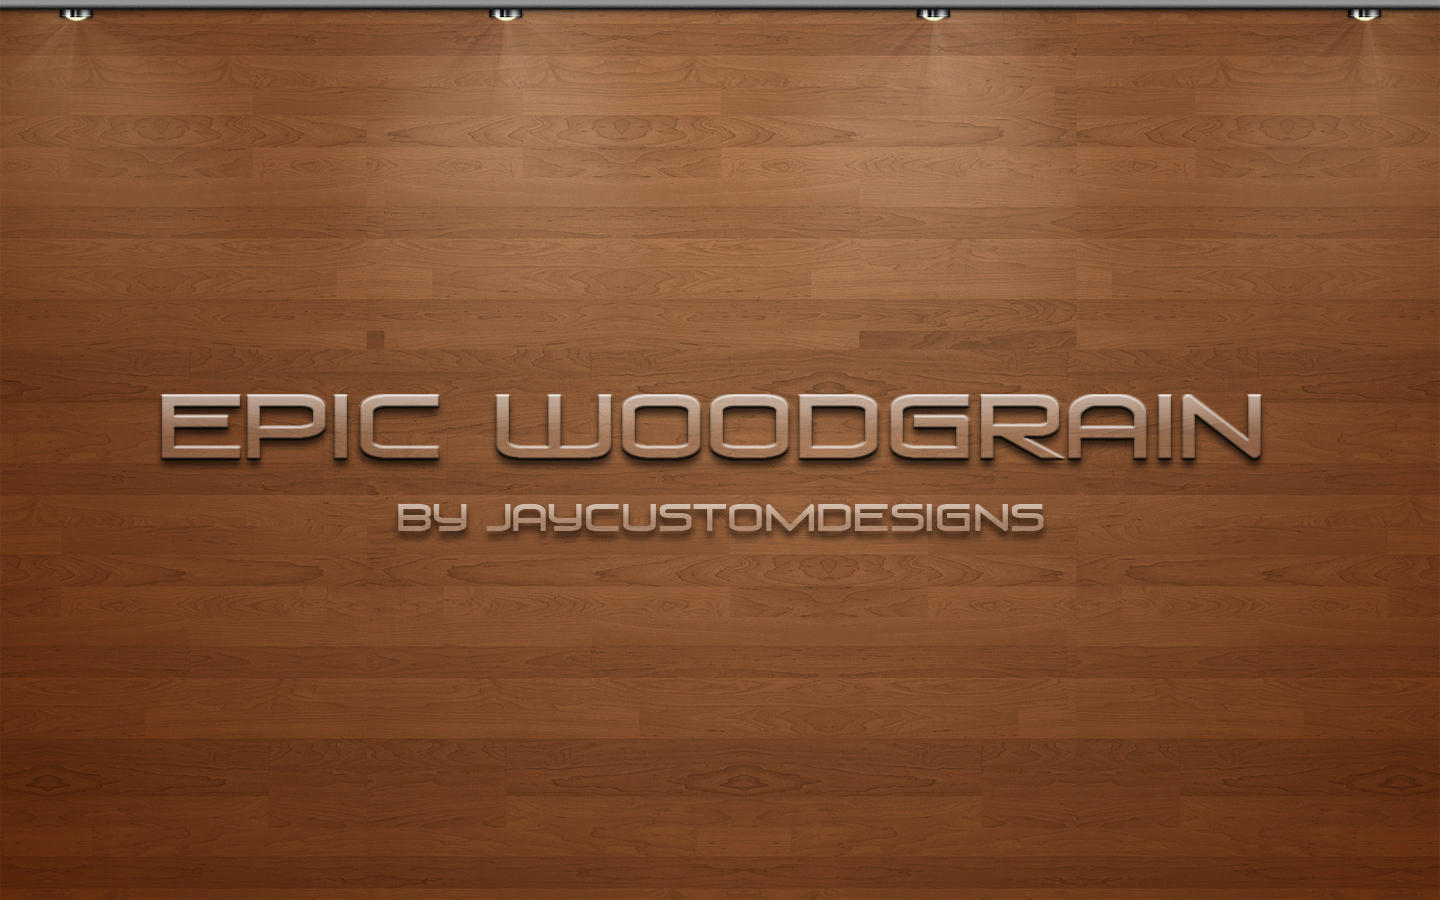 EPIC WOODGRAIN by JayCustom